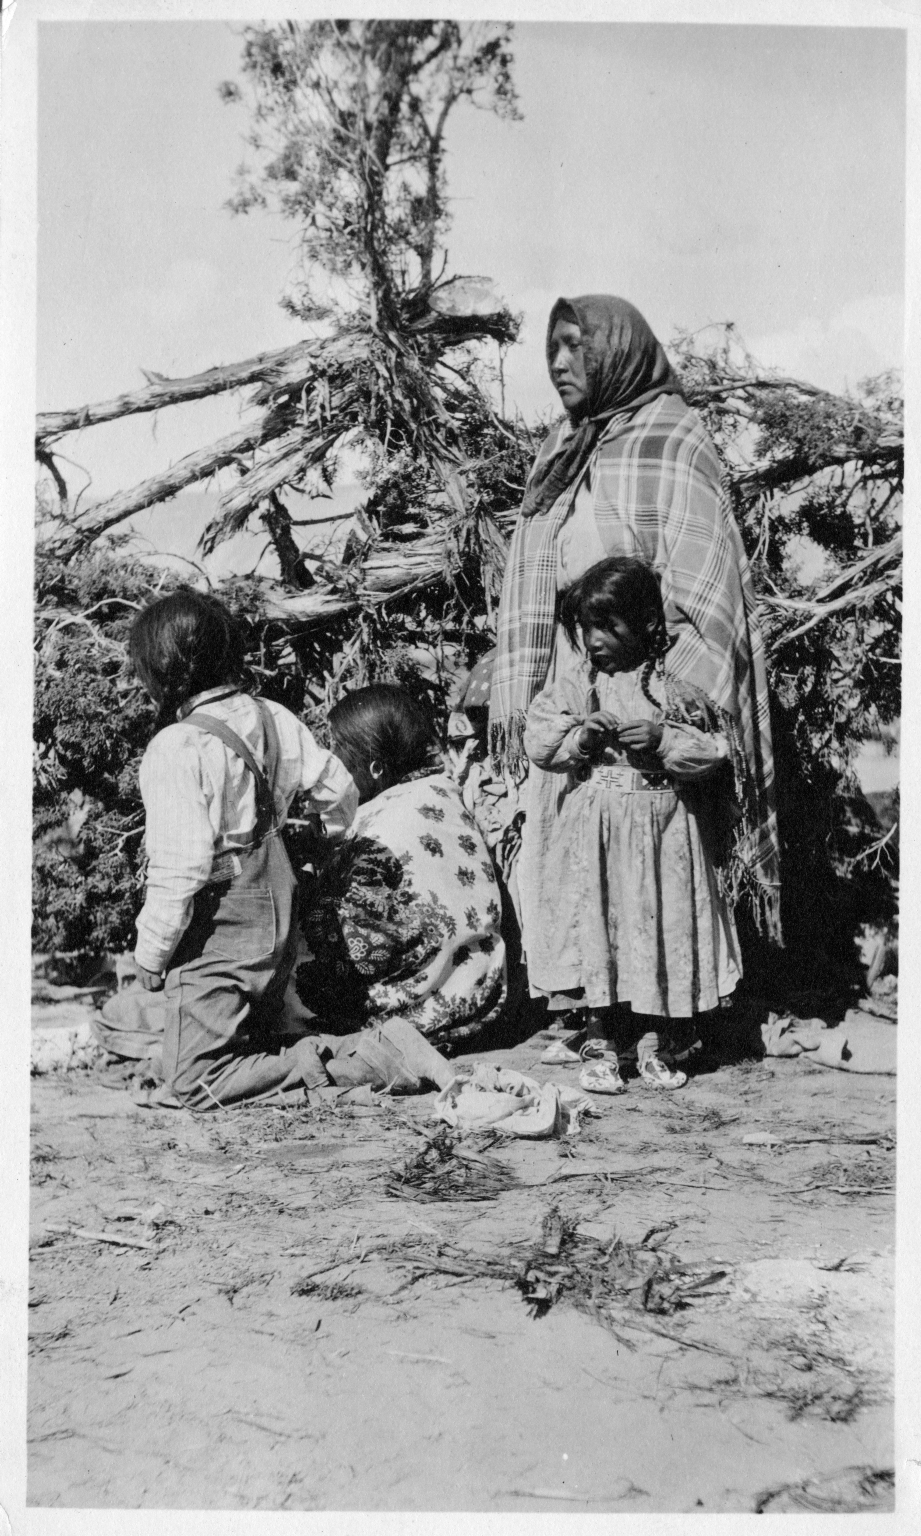 Portrait of a Ute Woman and Child